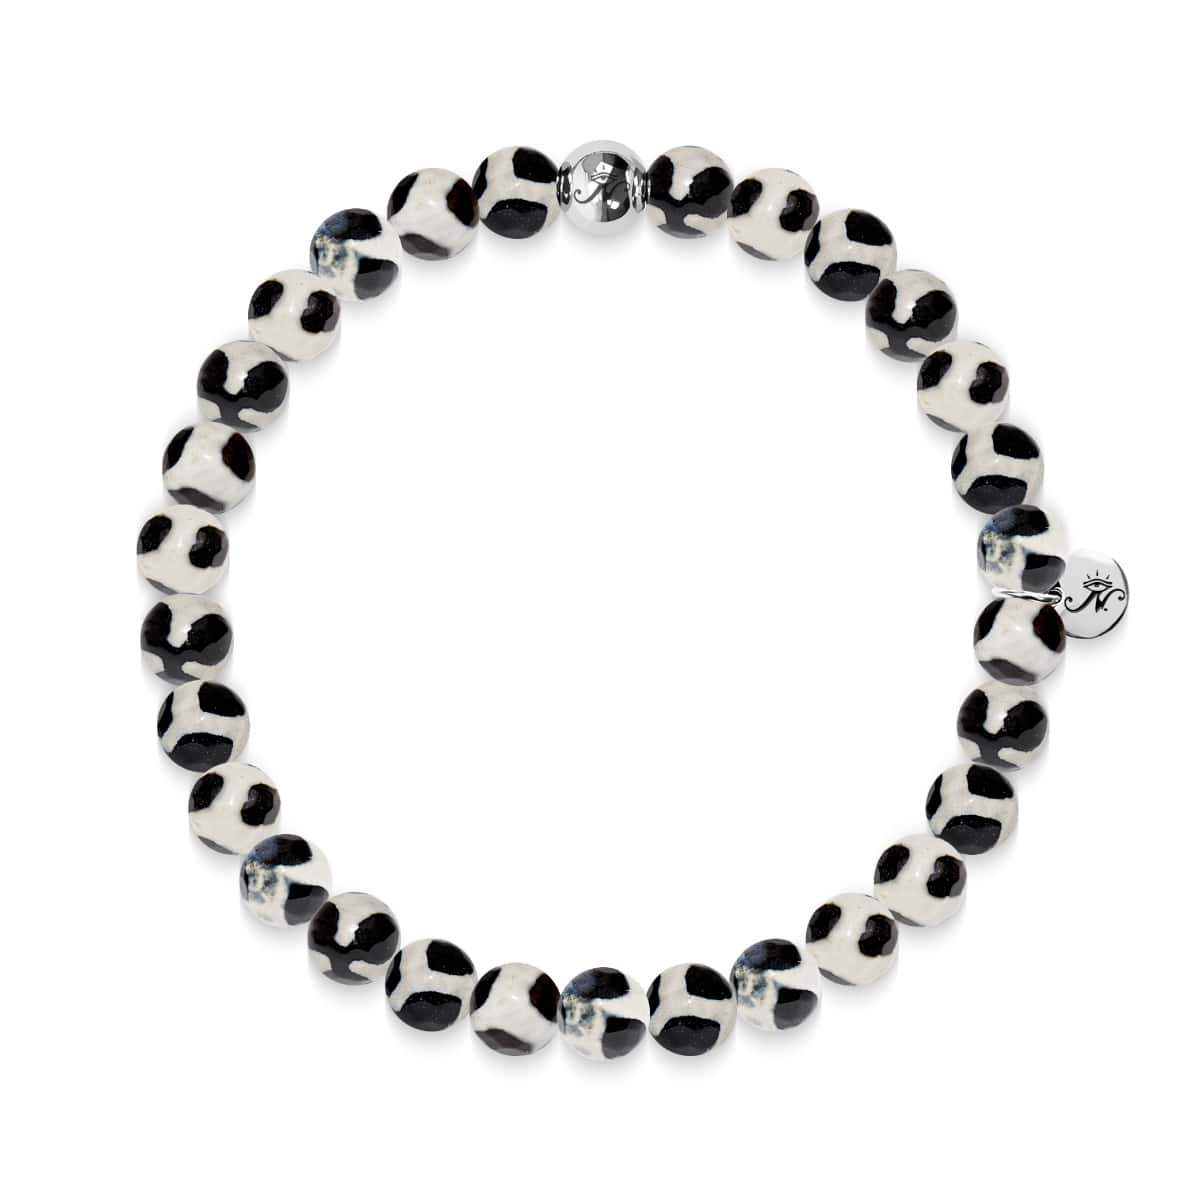 Prosperity | Silver Essence Black Spotted Faceted Agate Bracelet